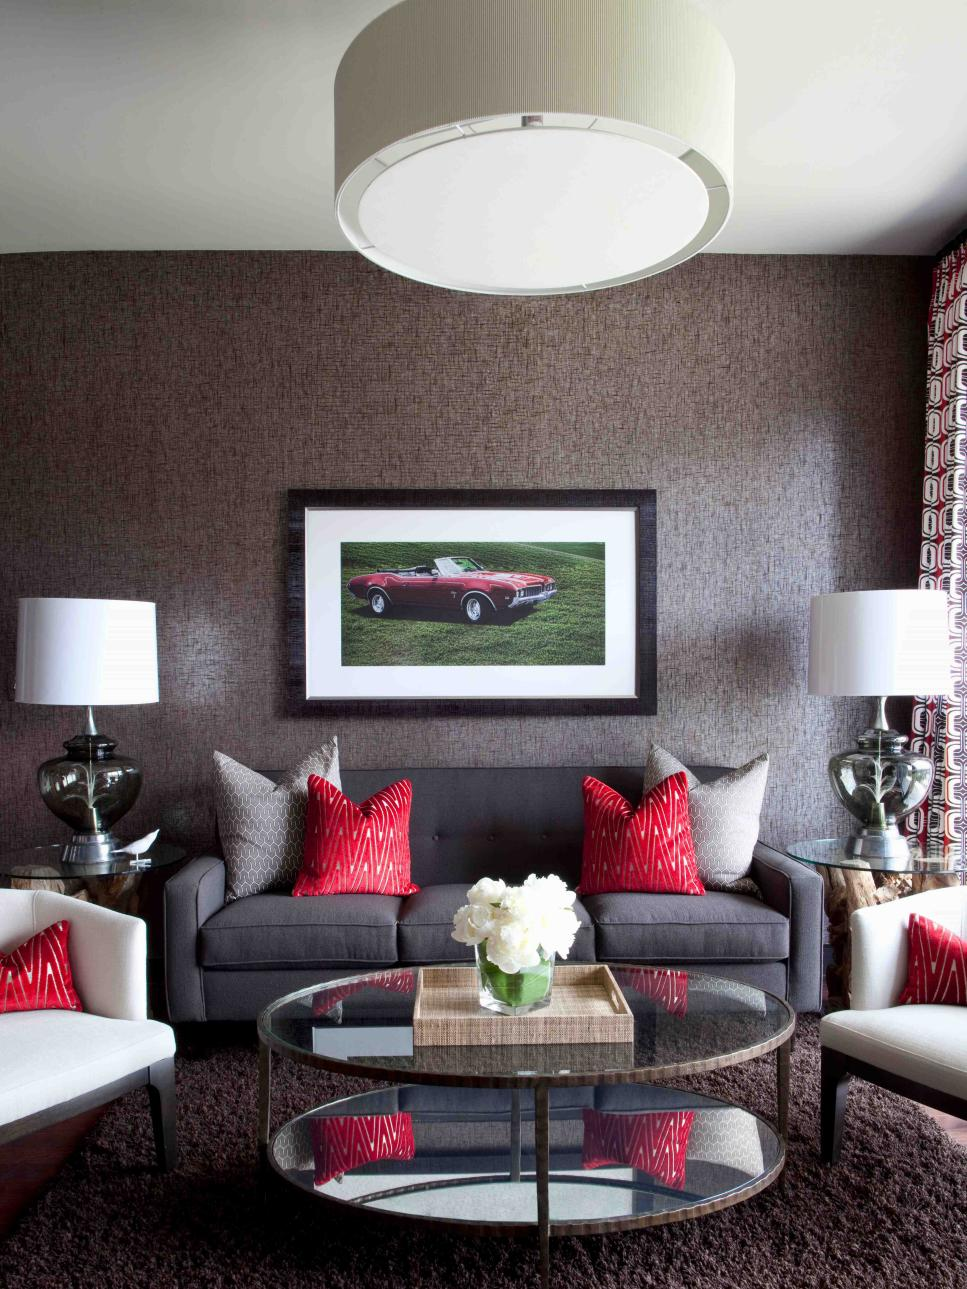 Small Living Rooms Decorating Hgtv: High-End Bachelor Pad Decorating On A Budget